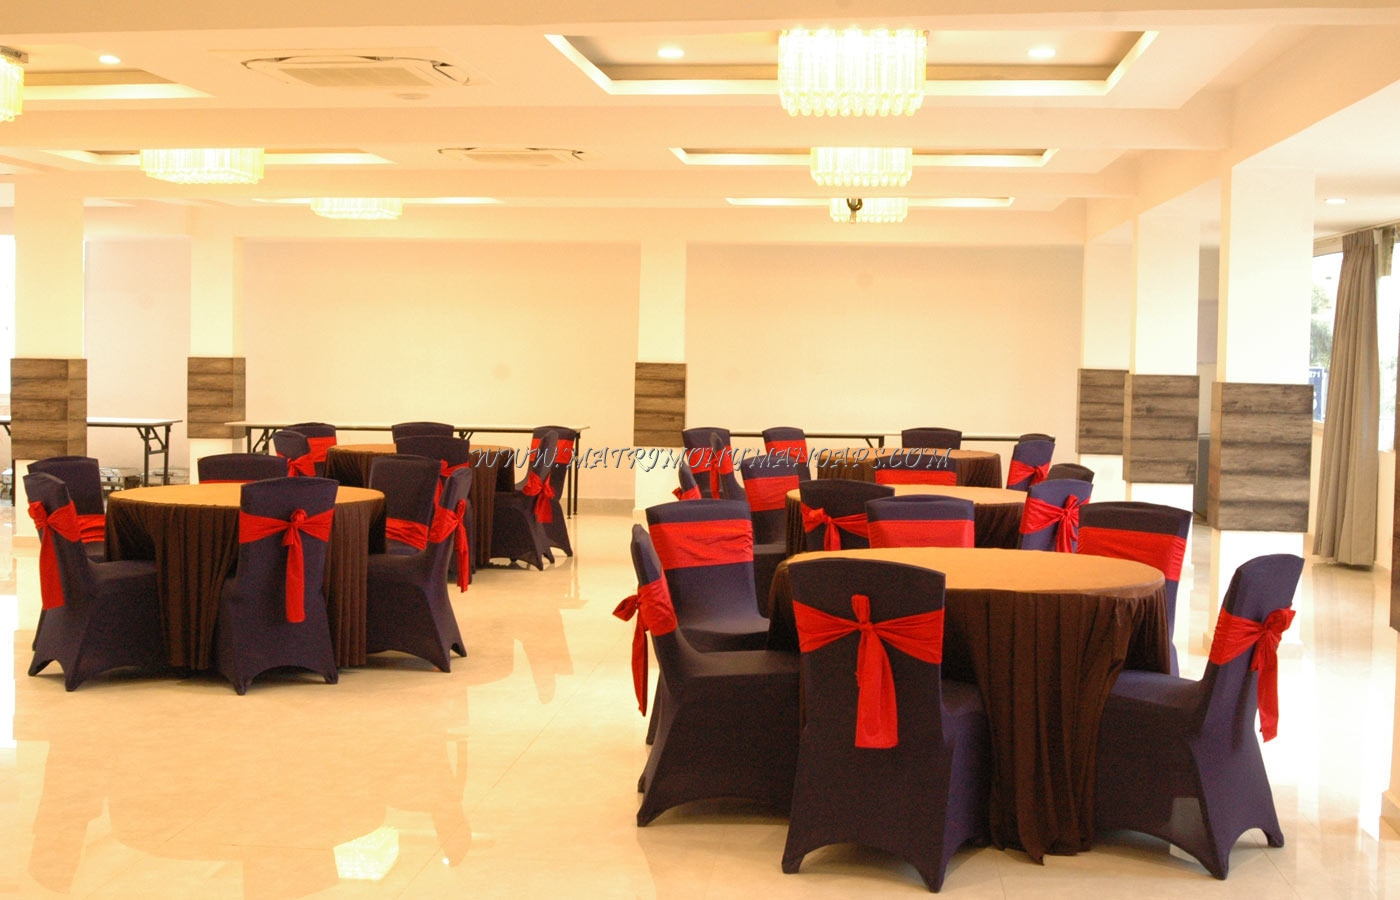 Find the availability of the NVR Banquet Hall (A/C) in Dr AS Rao Nagar, Hyderabad and avail special offers